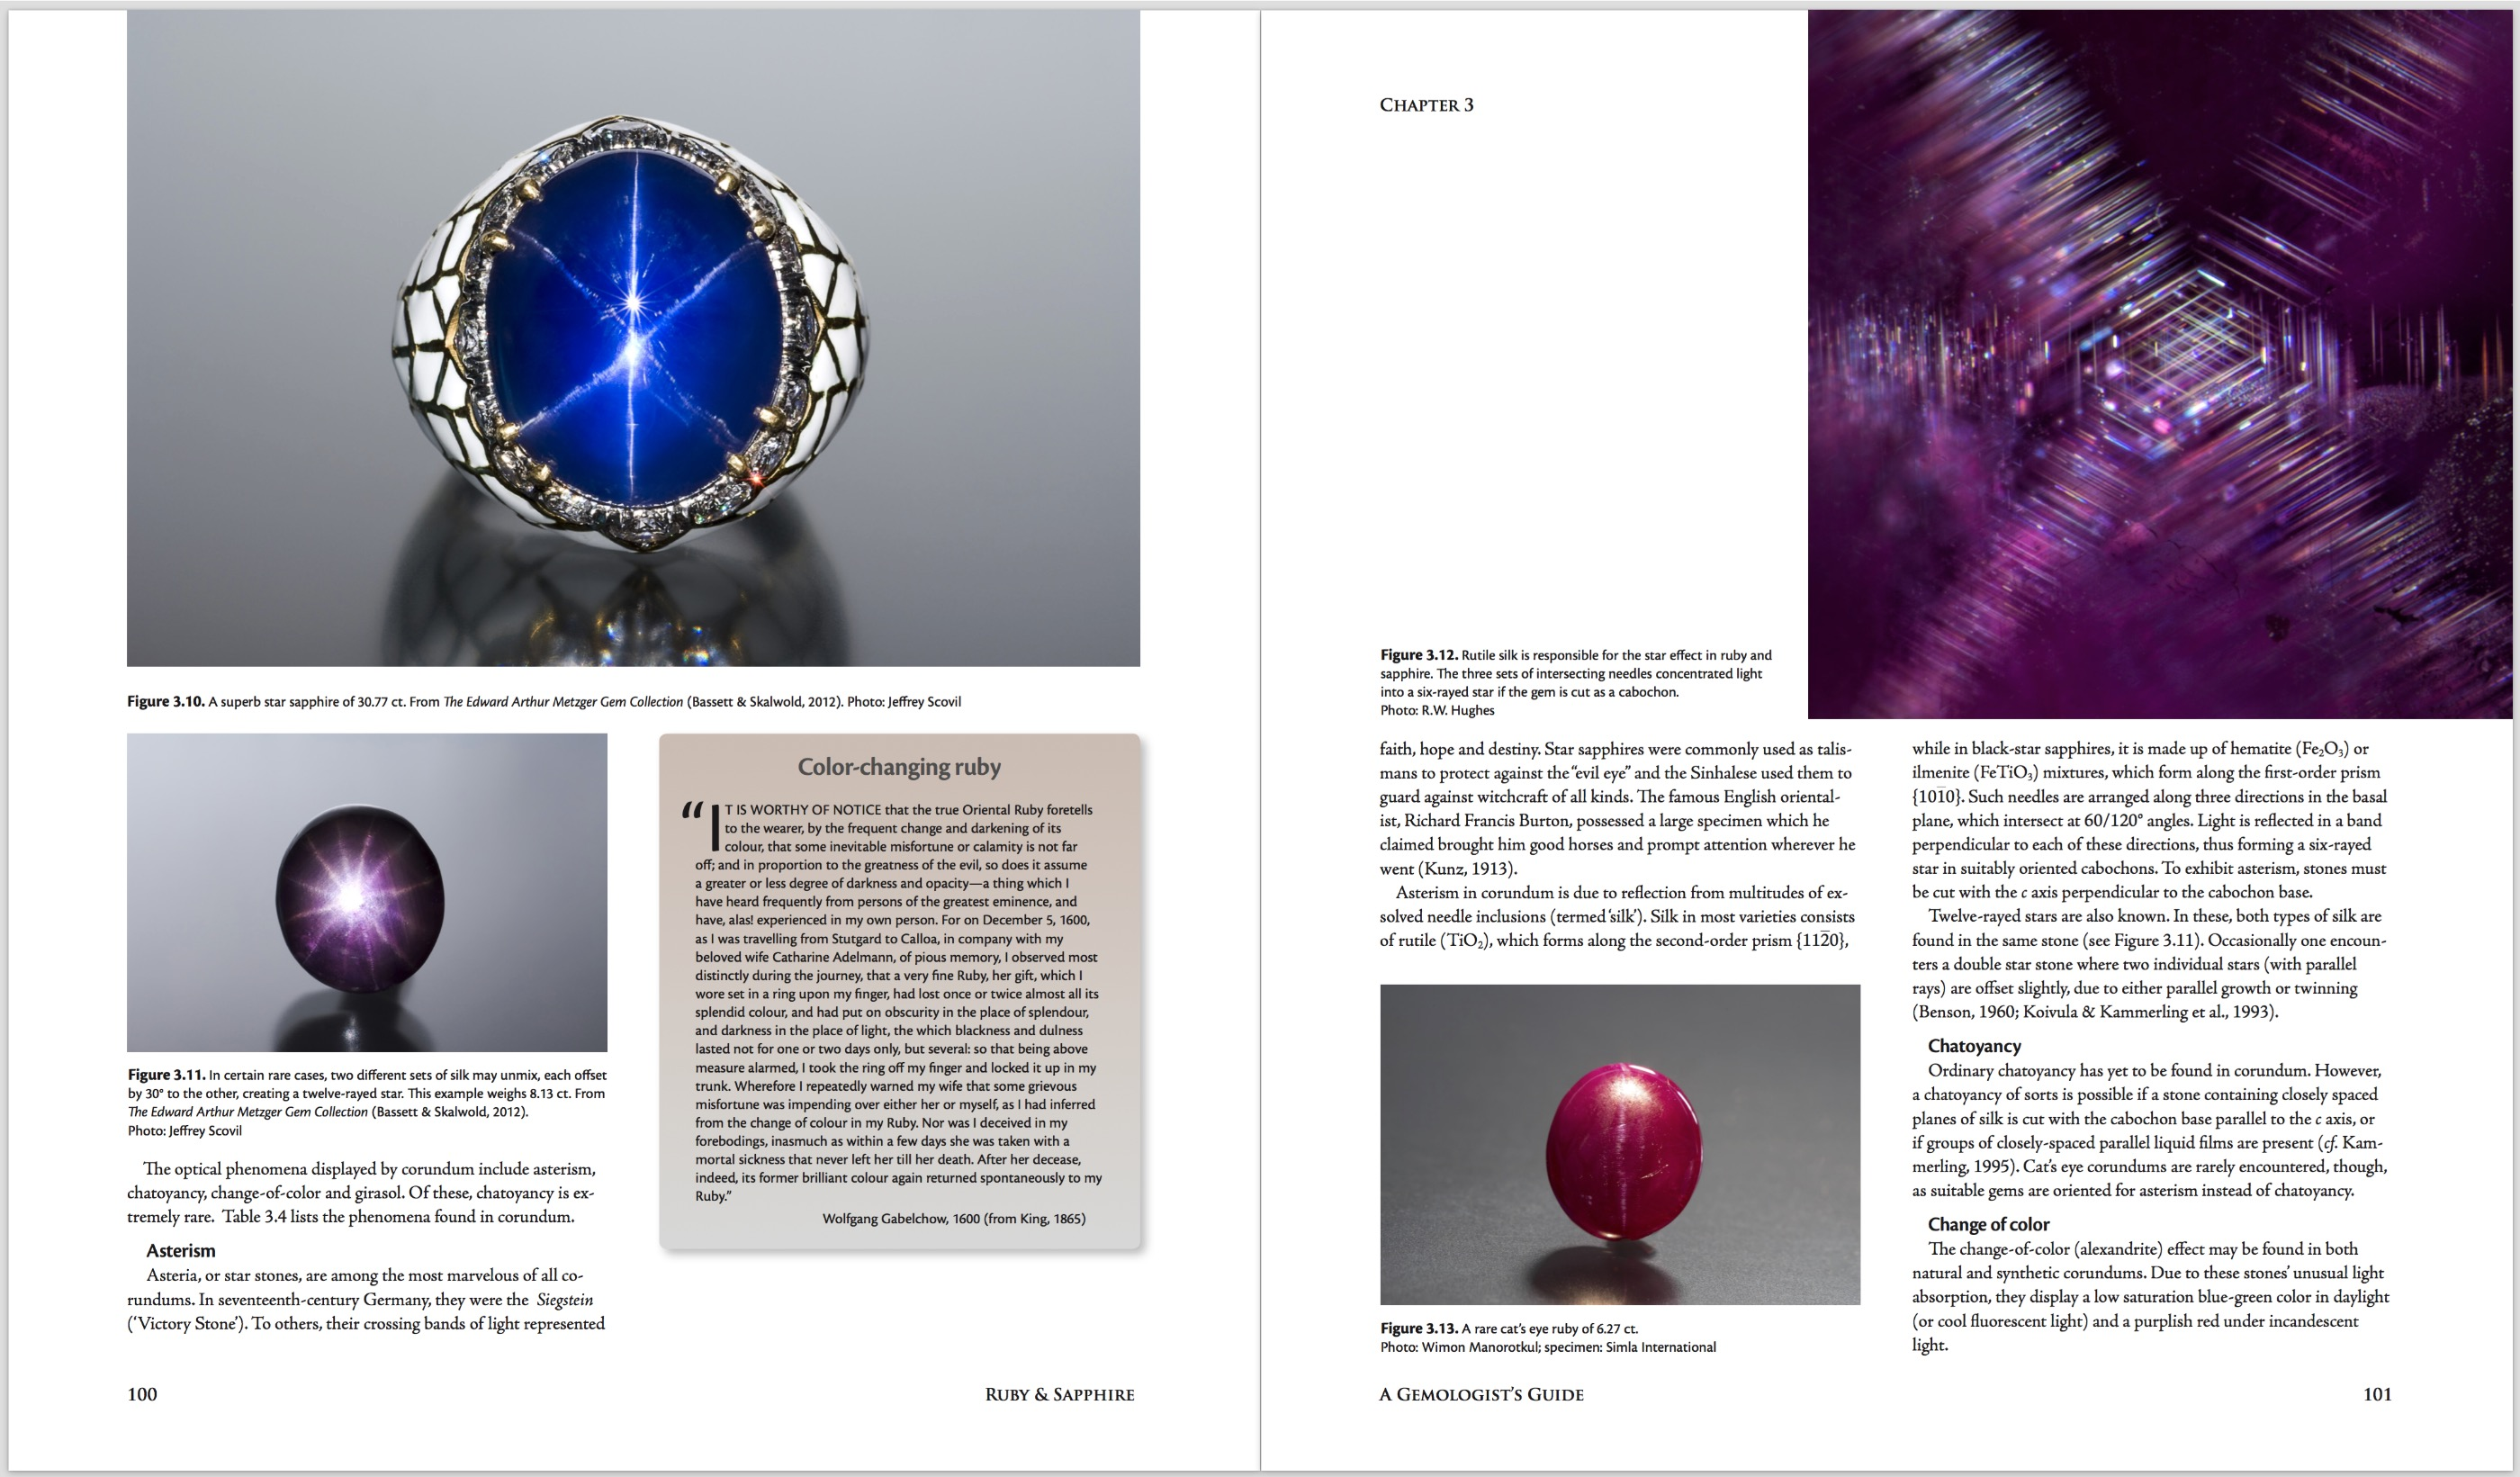 Ruby & Sapphire: A Gemologist's Guide – Properties & Phenomena